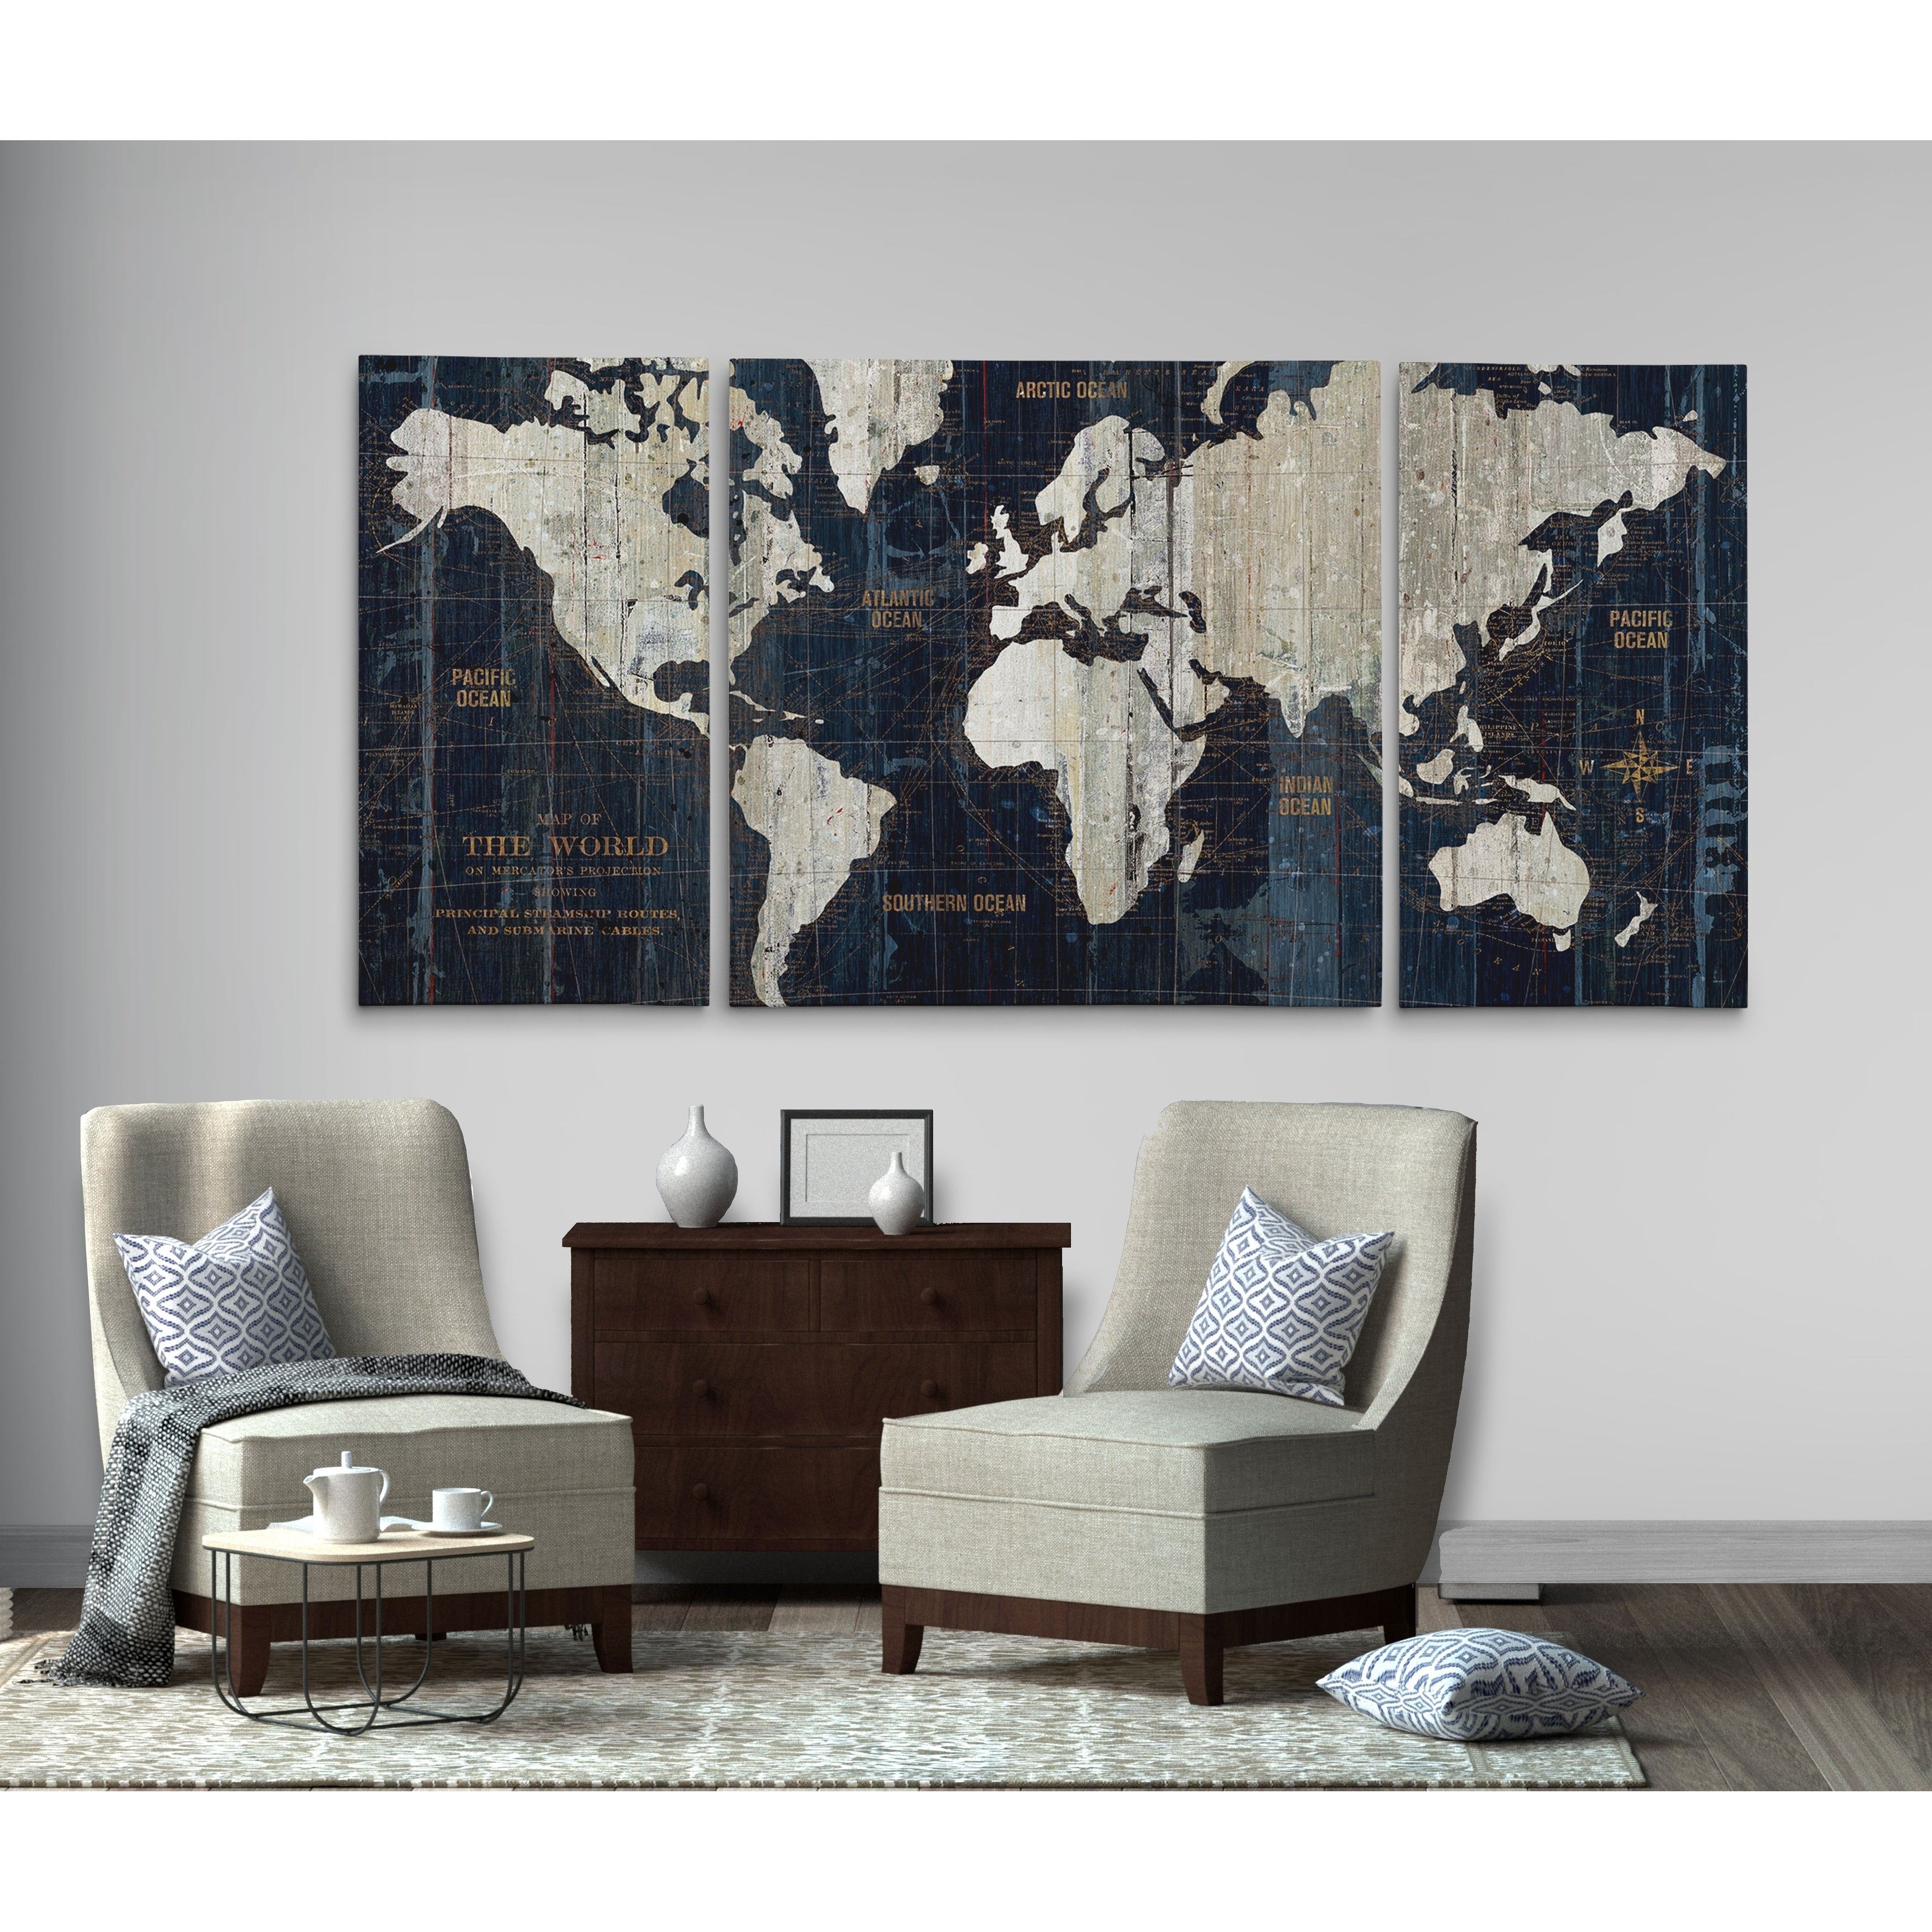 144f4c653de Shop  Old World Map Blue  3 Piece Graphic Art Print Set on Wrapped Canvas -  Blue - On Sale - Free Shipping Today - Overstock - 24267502